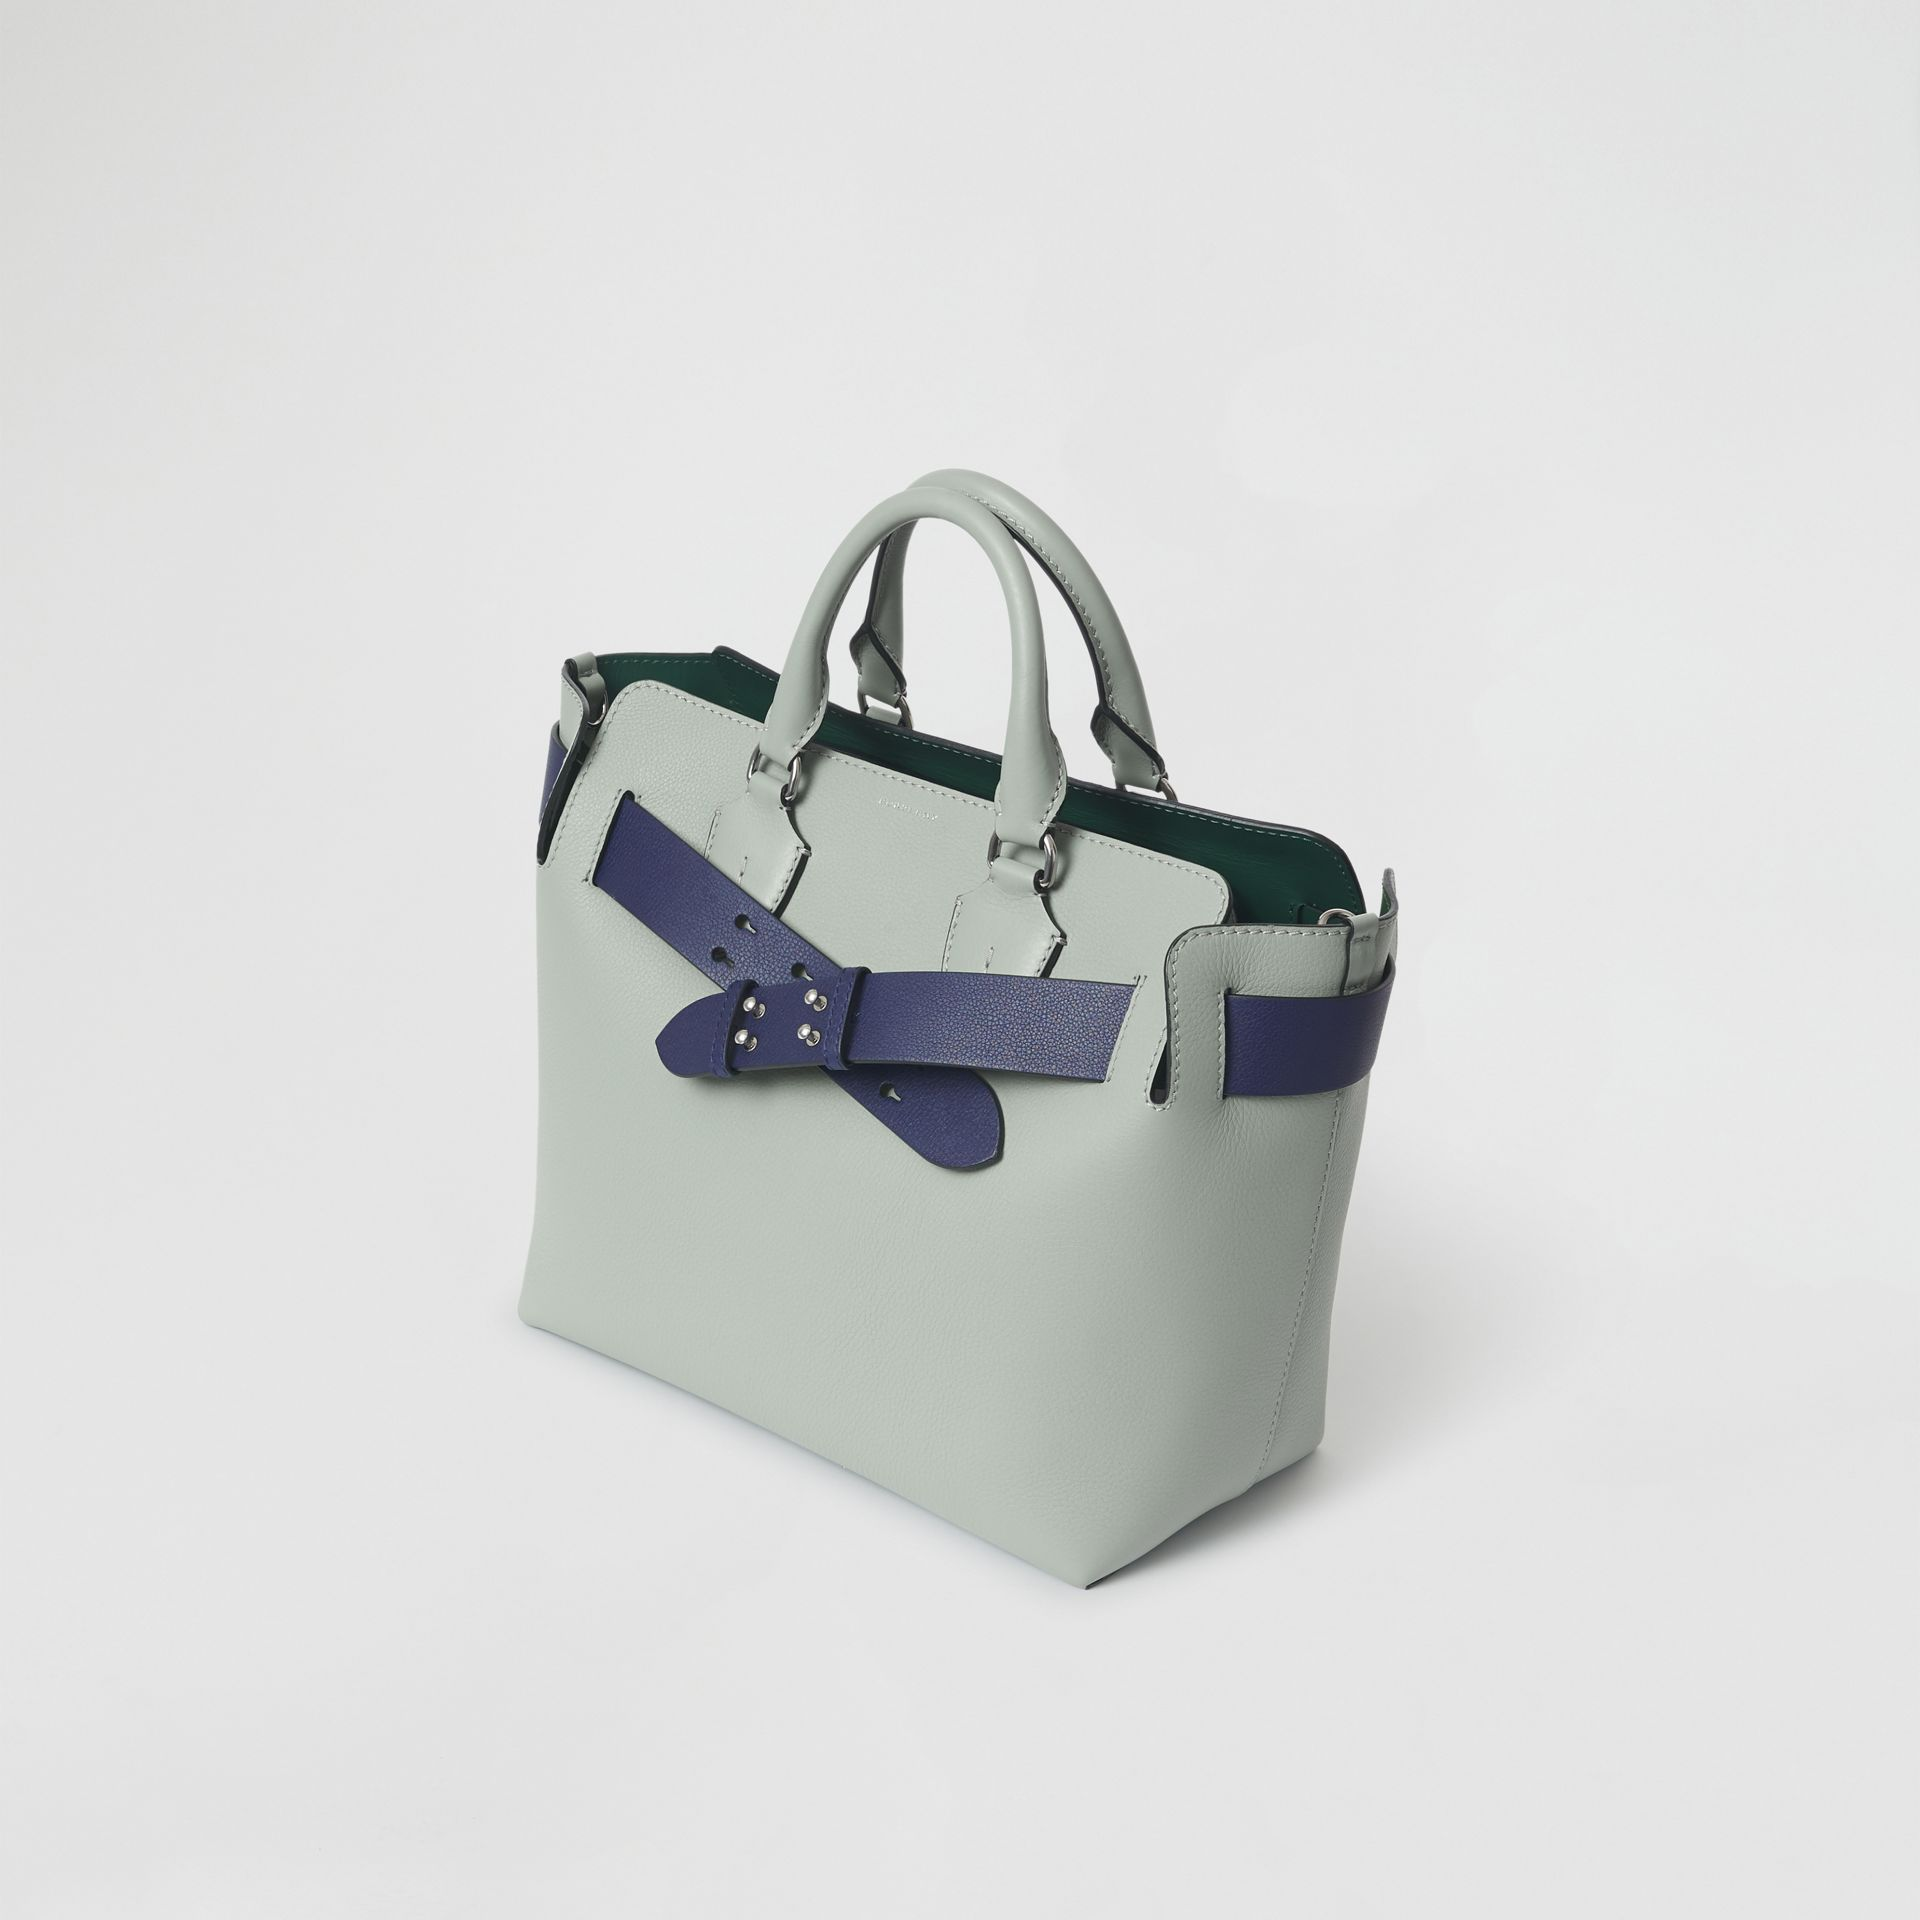 Sac The Belt moyen en cuir (Gris Bleu) - Femme | Burberry - photo de la galerie 4